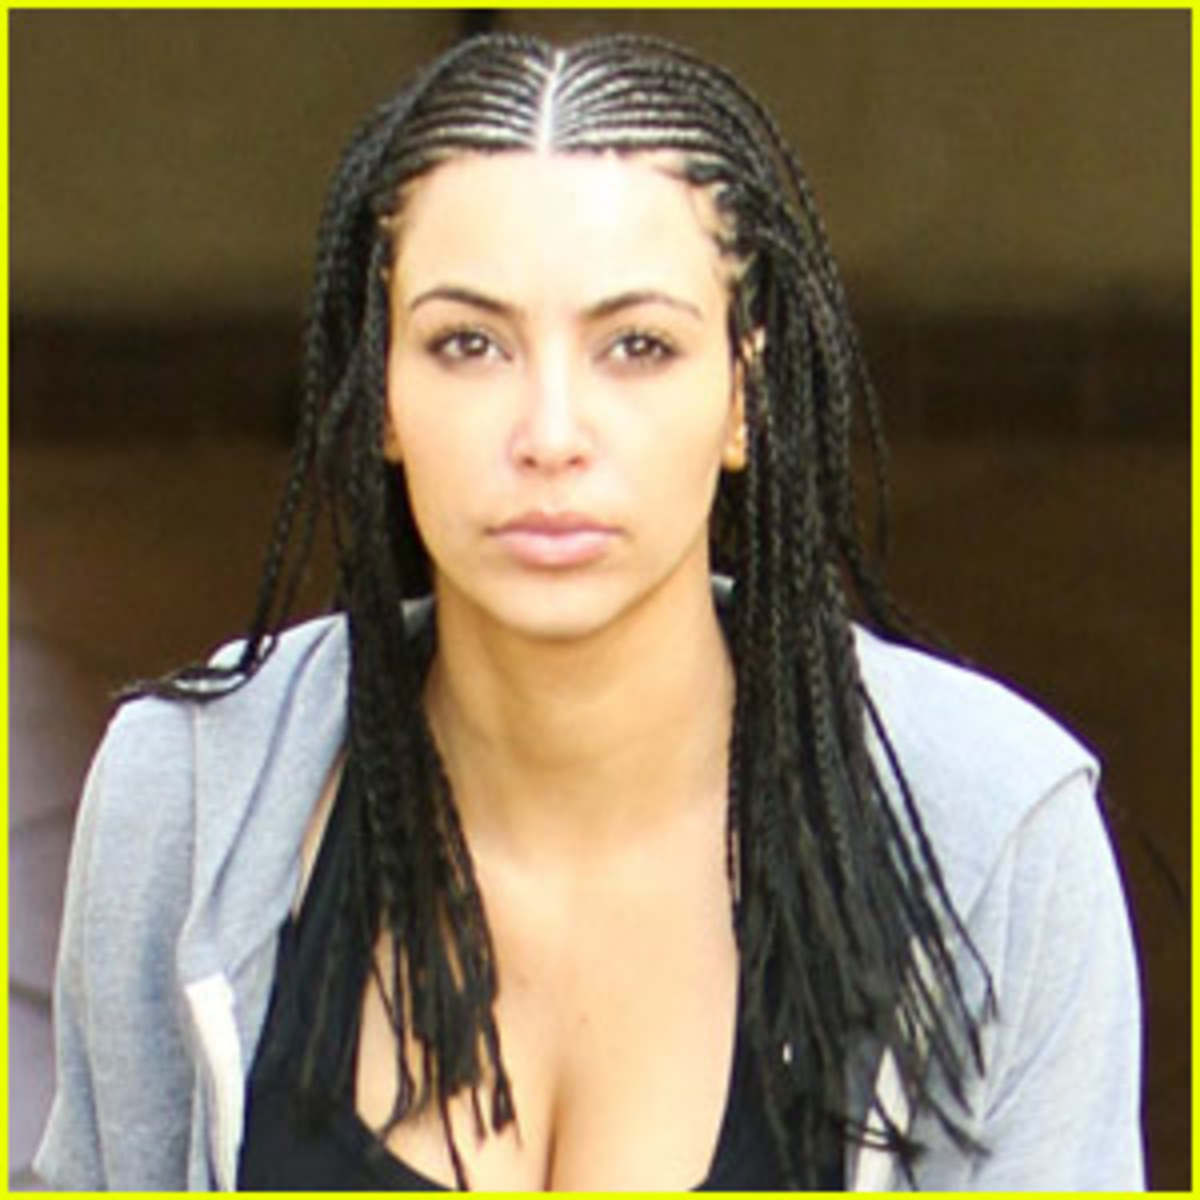 Kim Kardashian Hairstyles: Wigs, Waves, Curls, and Braids